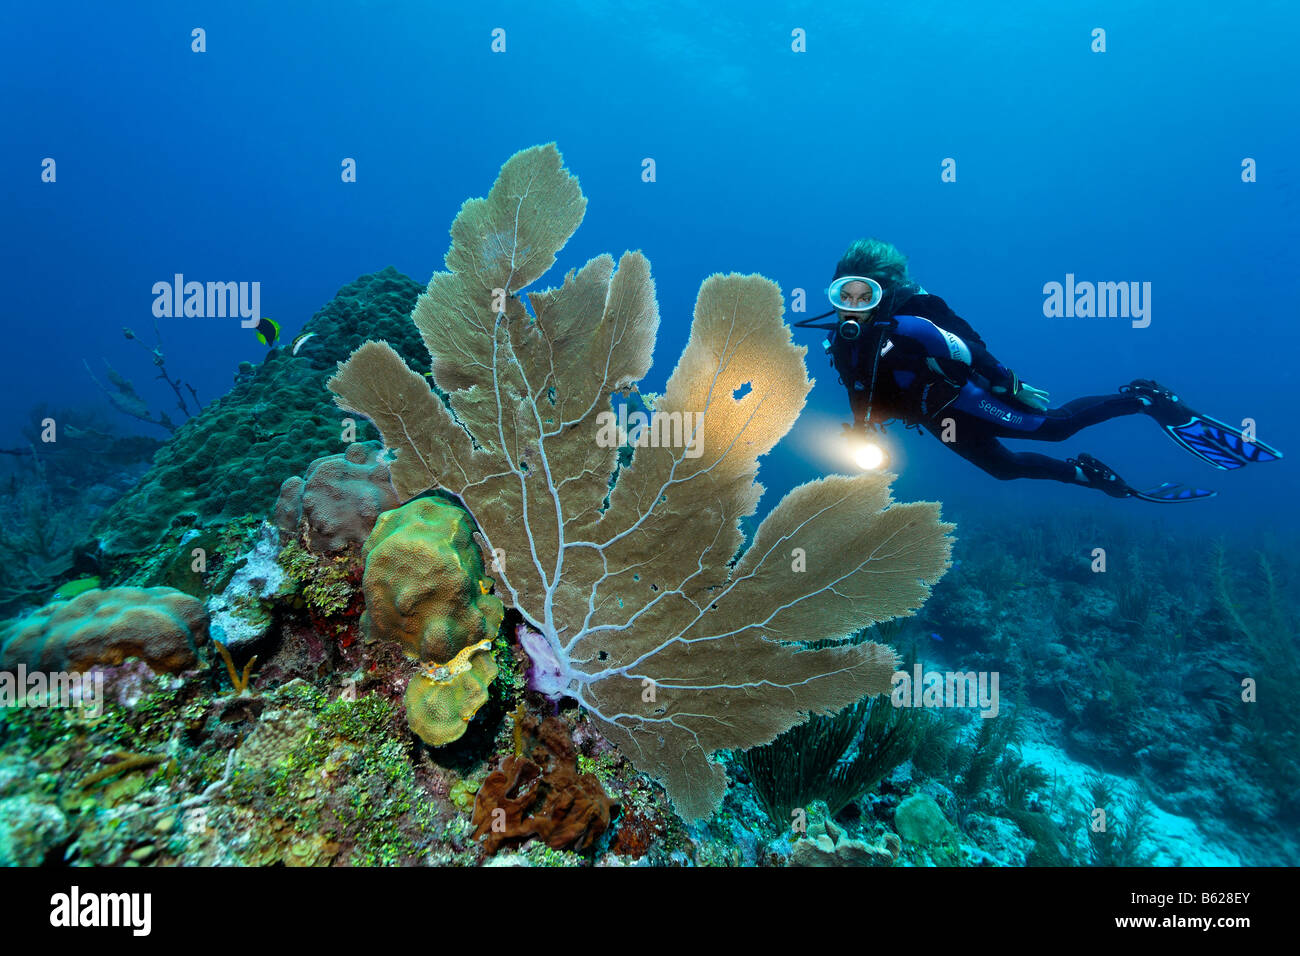 Scuba diver with a torch observing a Sea Fan coral (Gorgonia flabellum) on a coral reef, barrier reef, San Pedro, - Stock Image